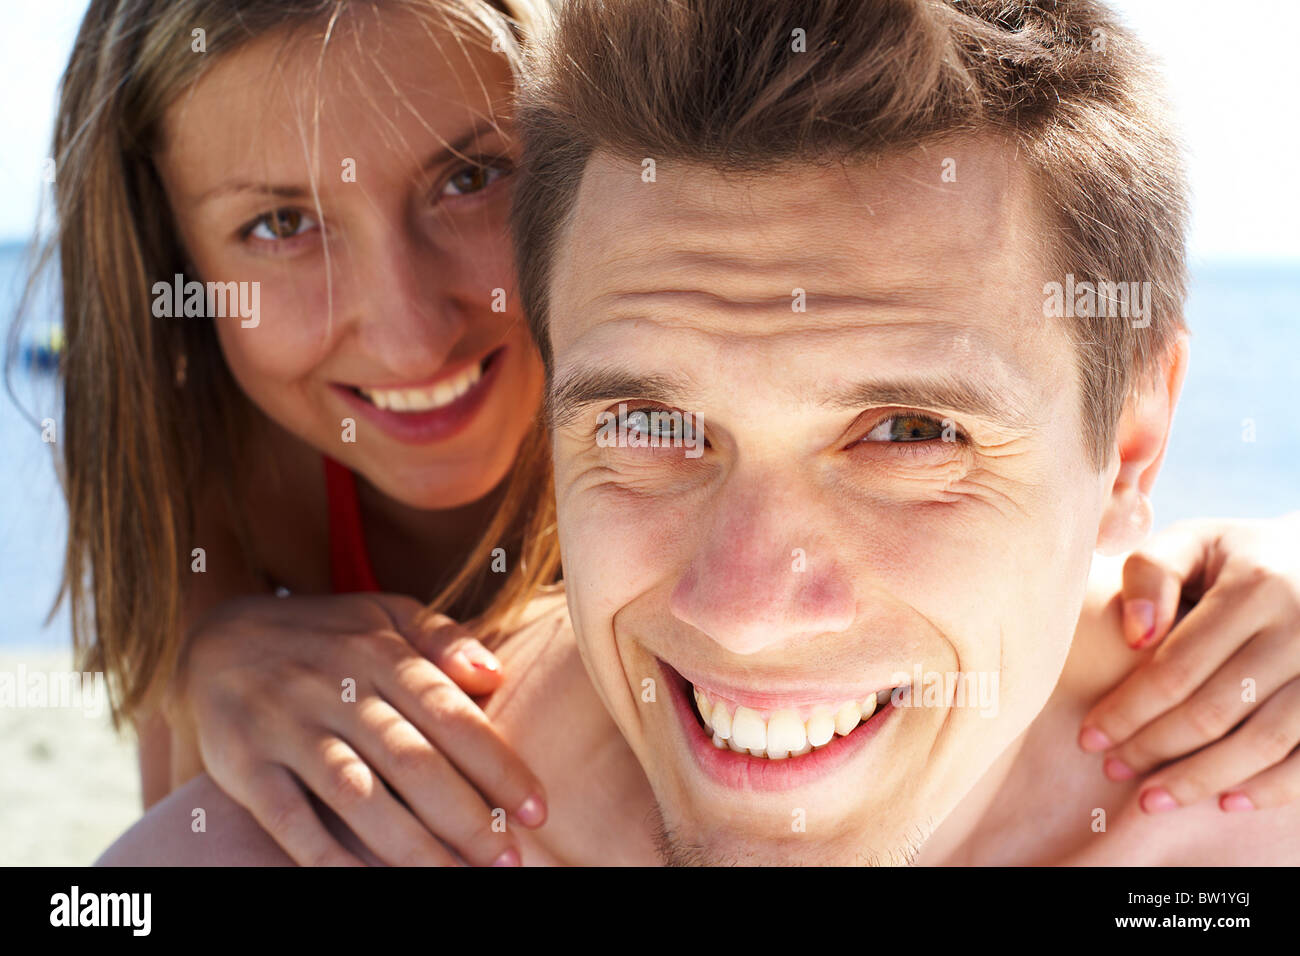 Photo of smiling guy looking at camera while pretty woman behind embracing him - Stock Image